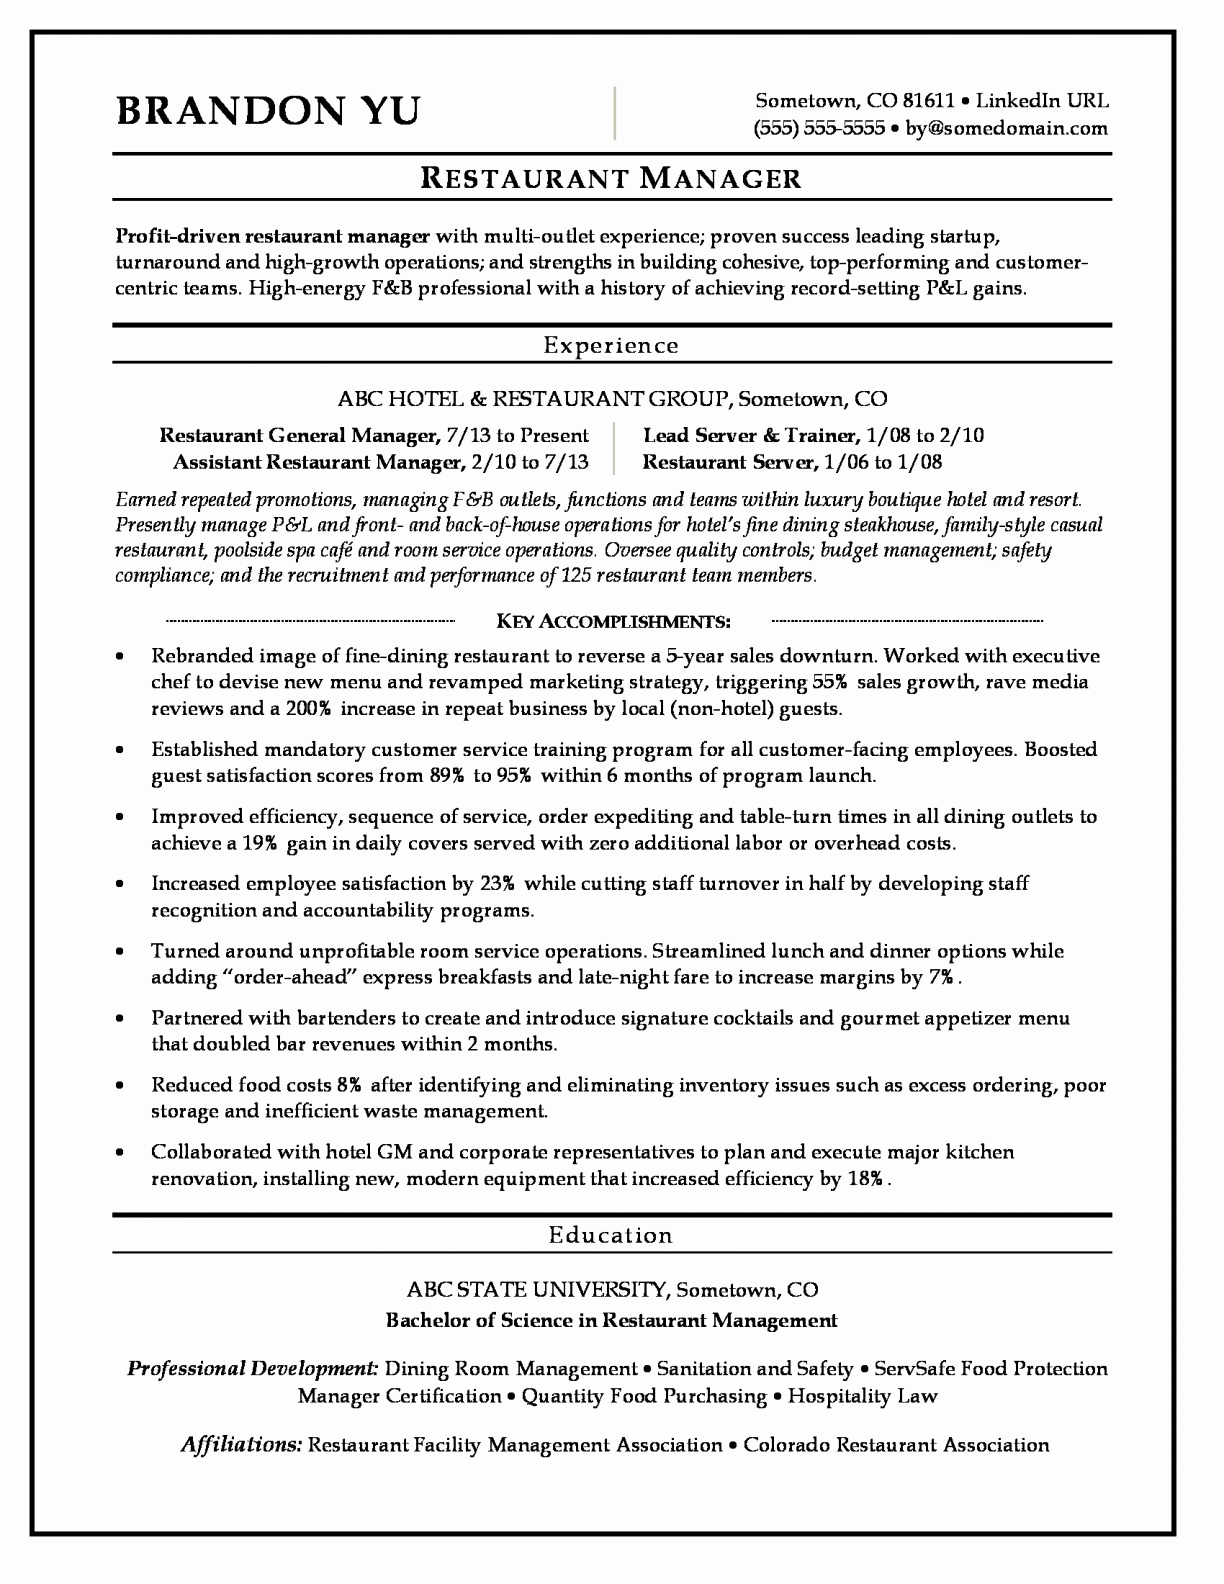 Hospitality Sample Resume - Safety Quotes for the Workplace Luxury Lovely Grapher Resume Sample